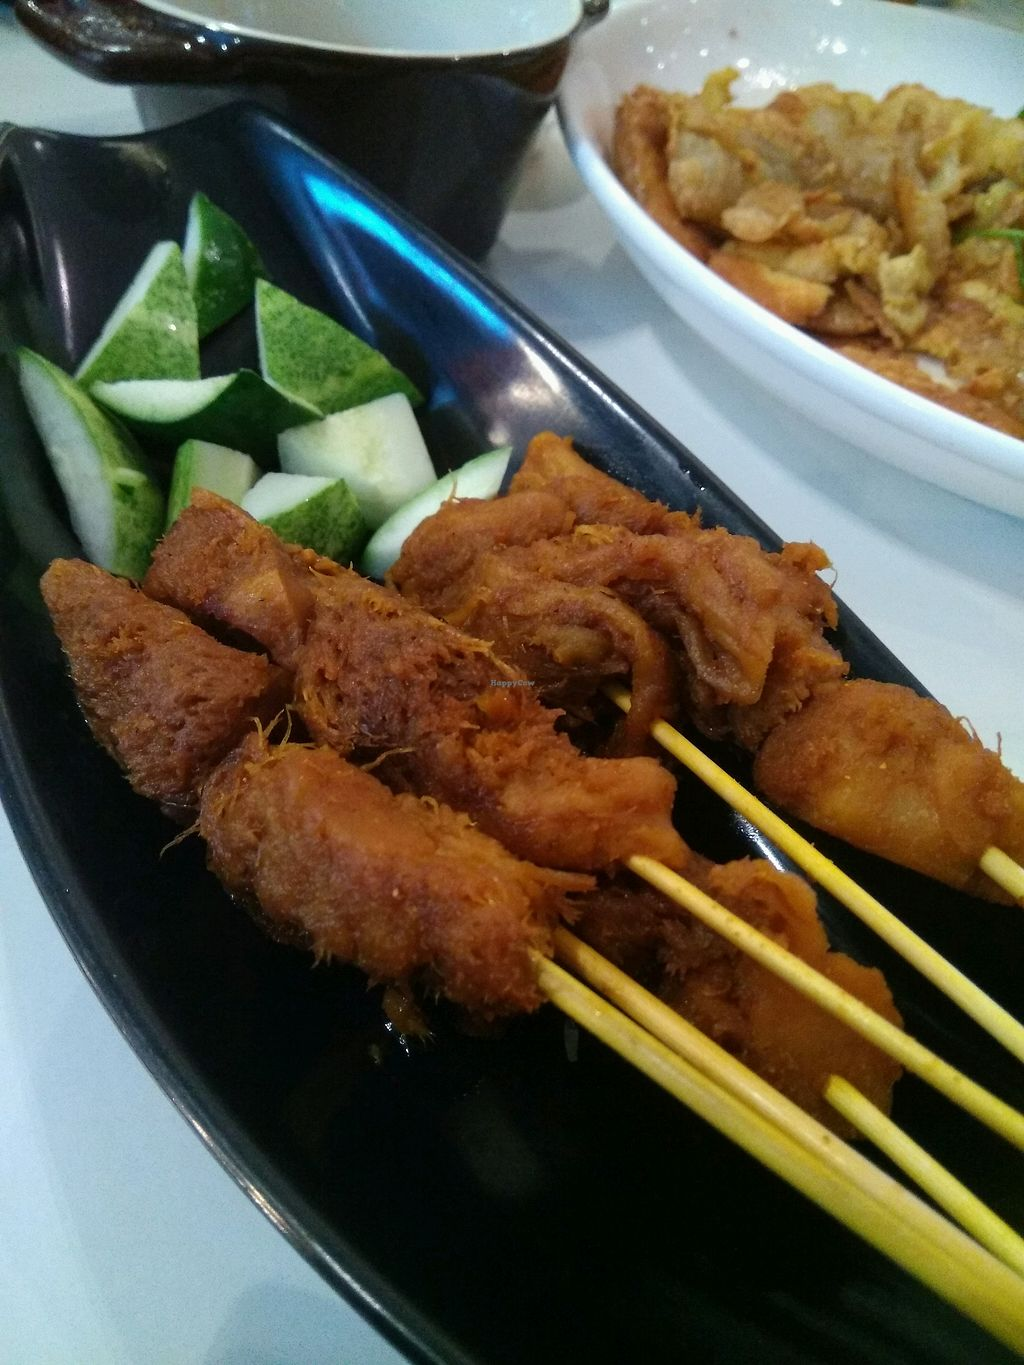 """Photo of Yuan Vegetarian Bistro  by <a href=""""/members/profile/AdelOng"""">AdelOng</a> <br/>Lion Mane Satay  <br/> May 4, 2018  - <a href='/contact/abuse/image/43835/394832'>Report</a>"""